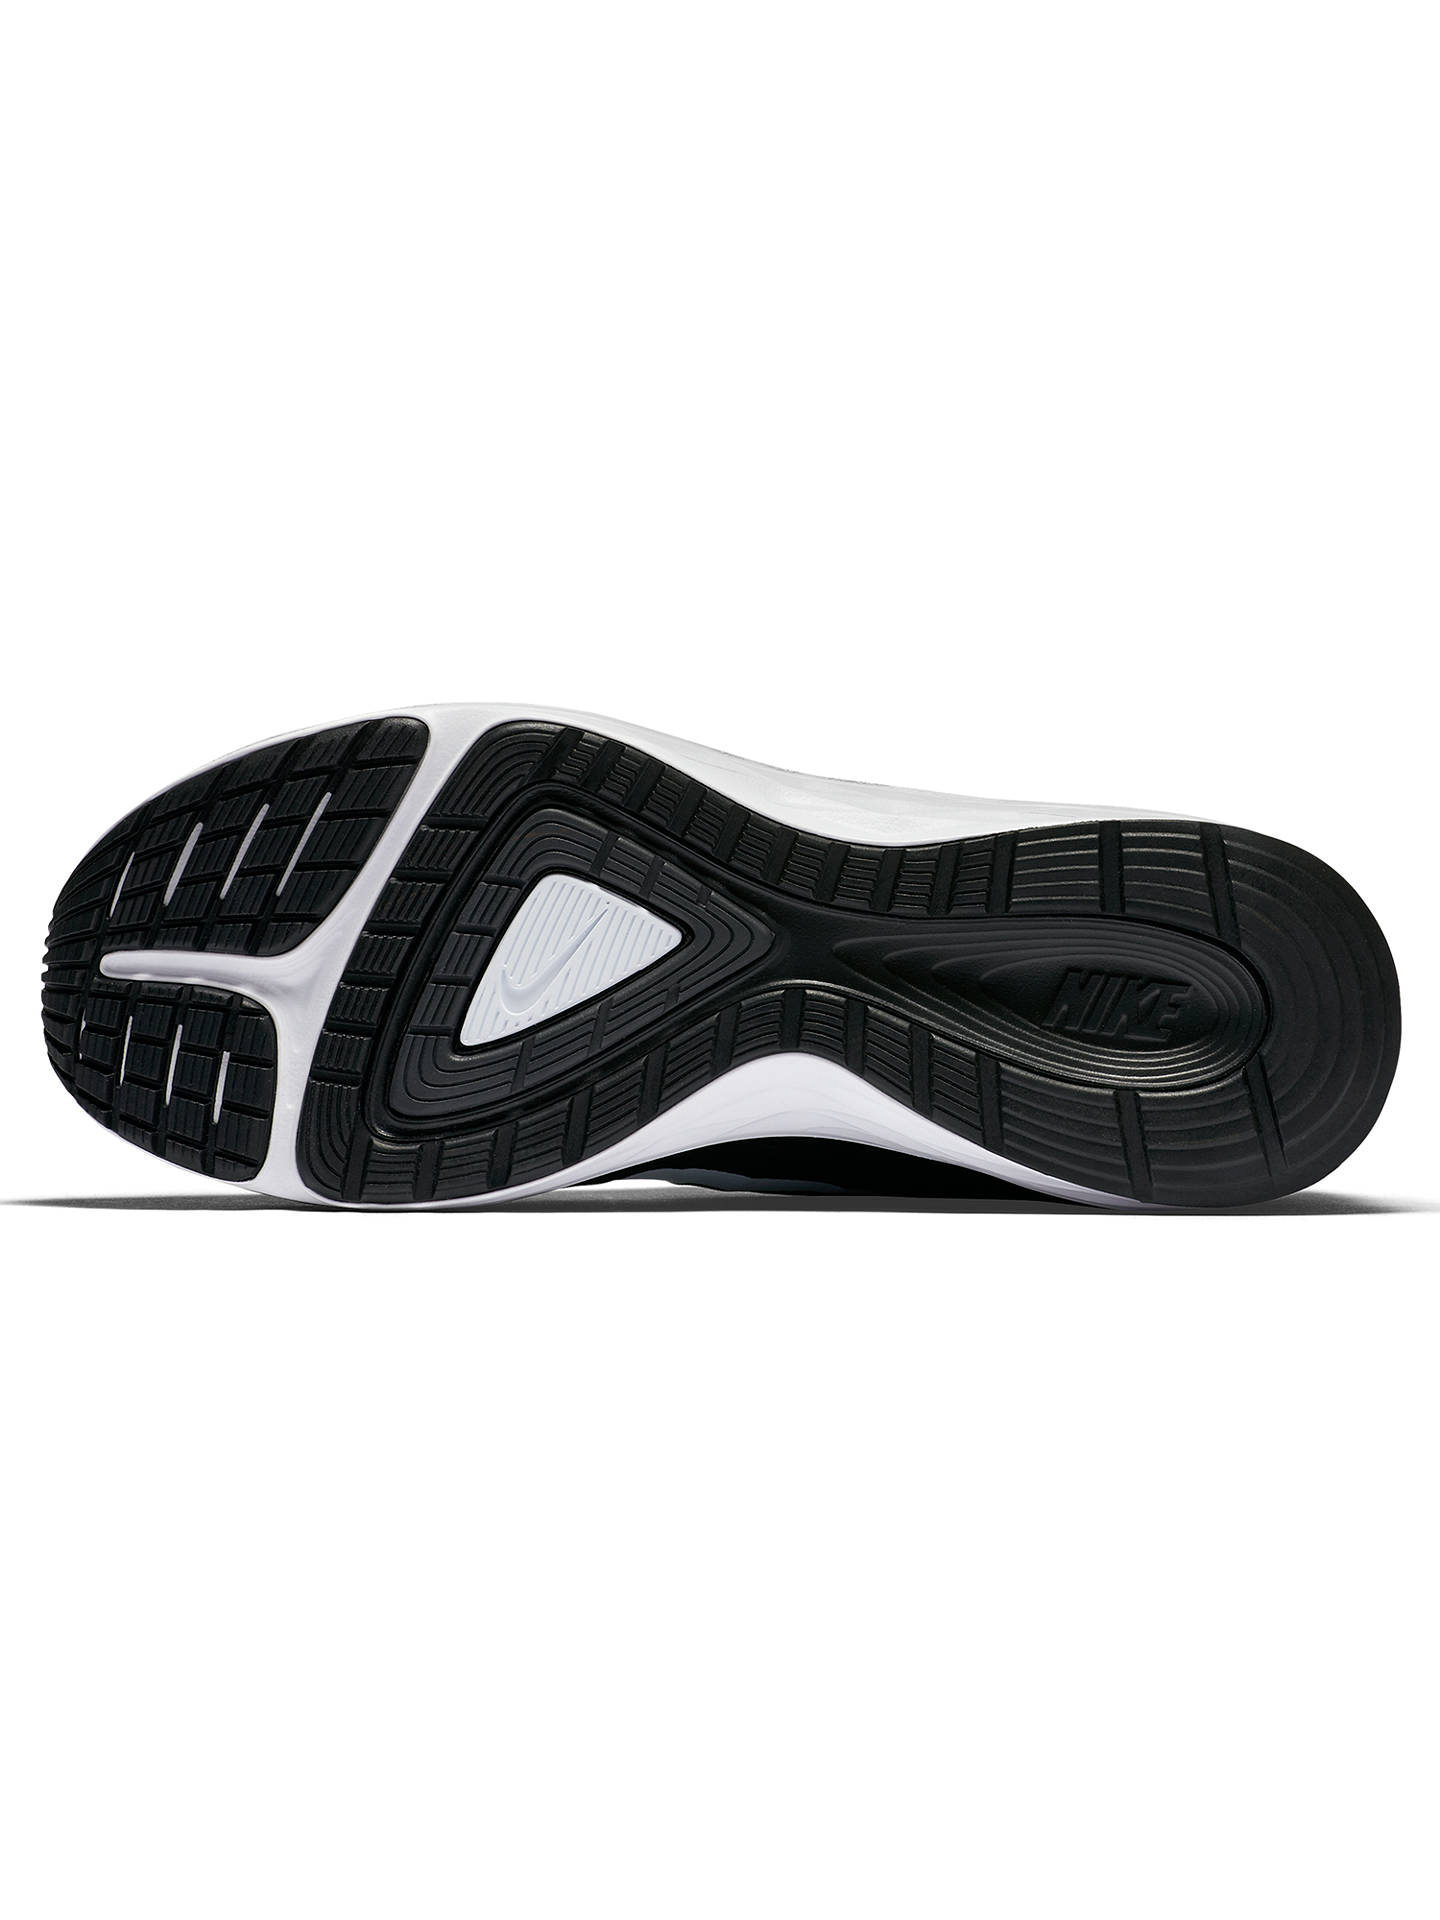 Comprimido Aburrido Facultad  Nike Dual Fusion X 2 Men's Running Shoes, Black/White at John Lewis &  Partners